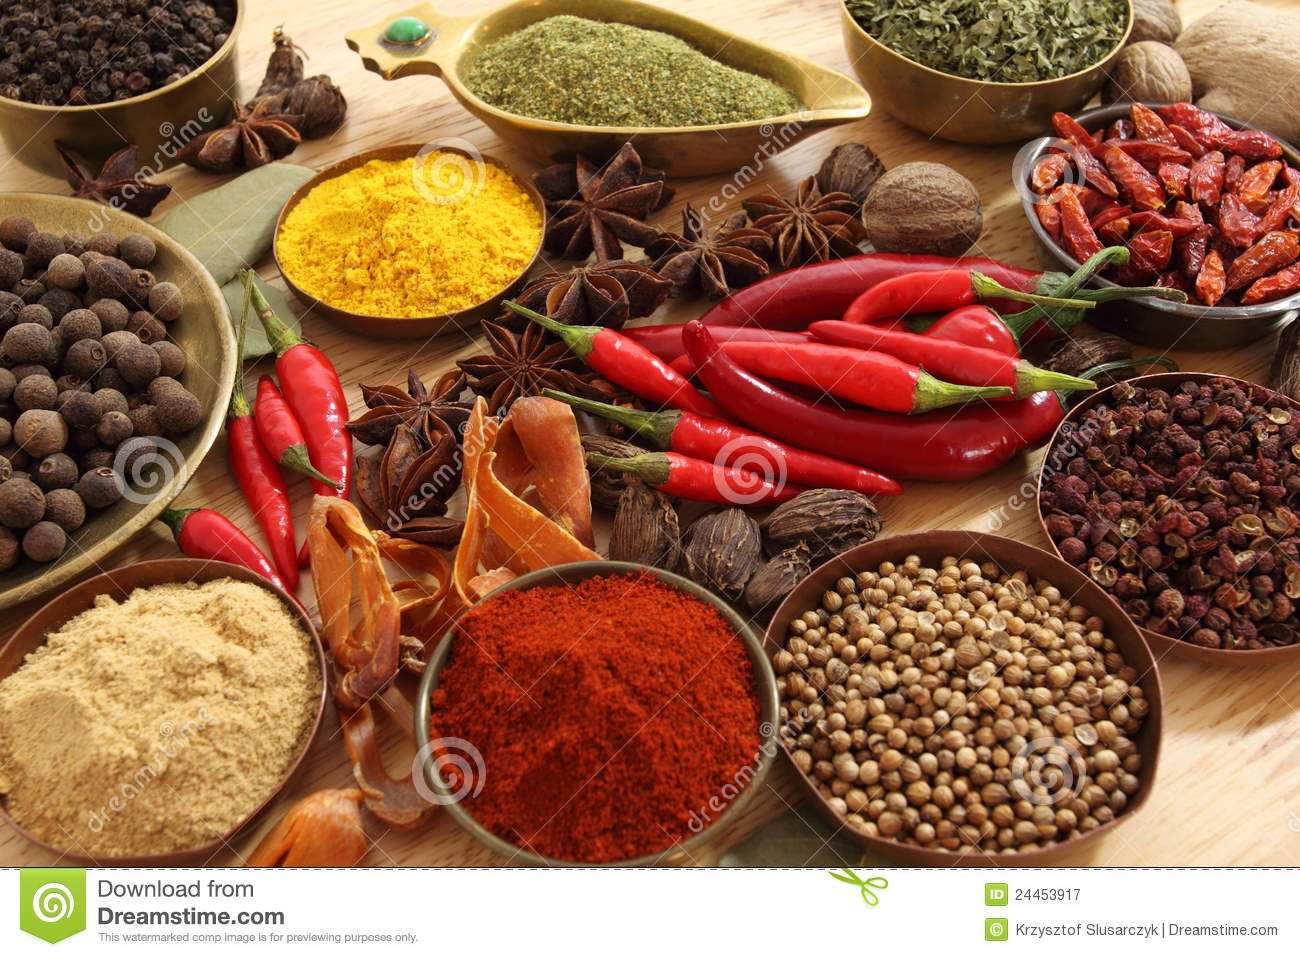 Spices – How African Entrepreneurs Can Build A Business From This Old But Lucrative Product